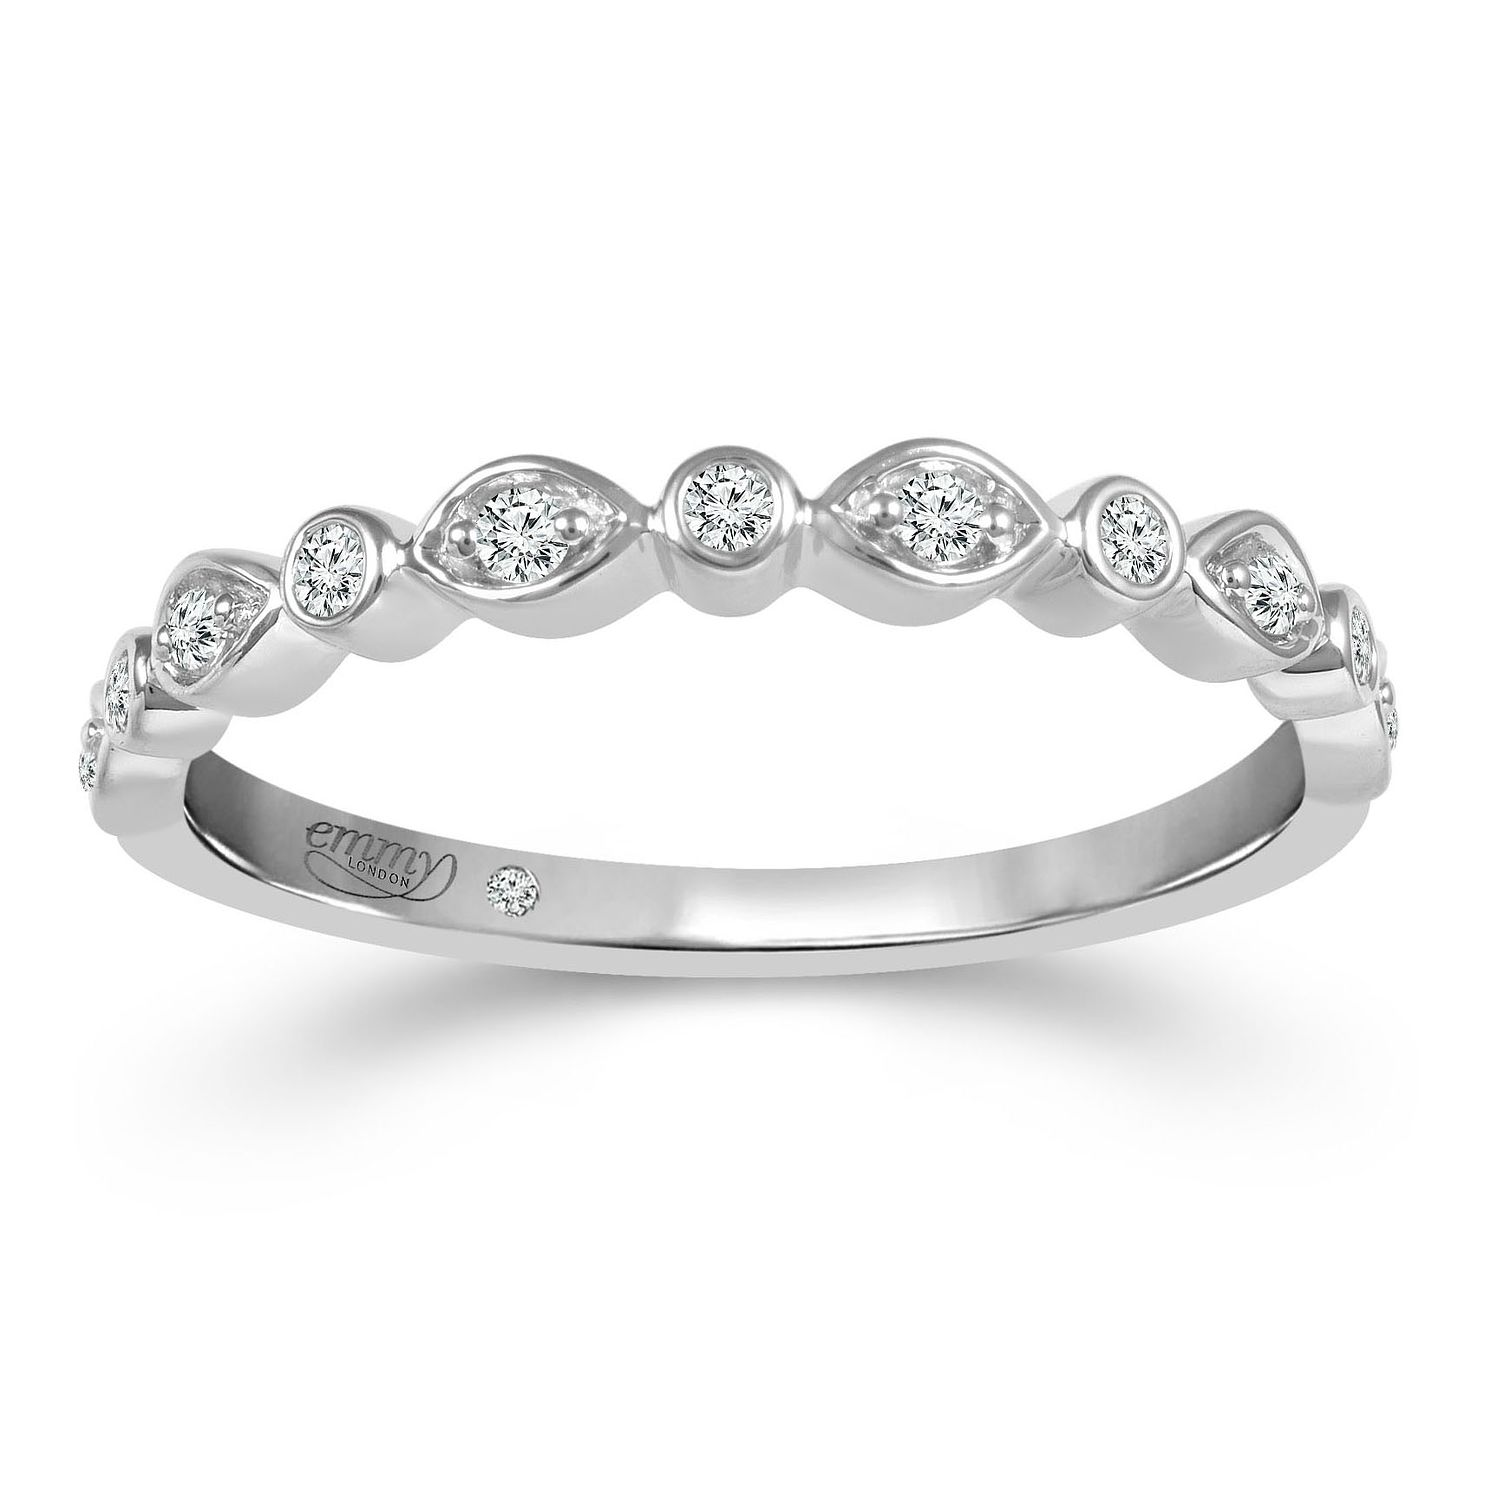 Emmy London 18ct White Gold 0.10ct Diamond Eternity Ring - Product number 2884267